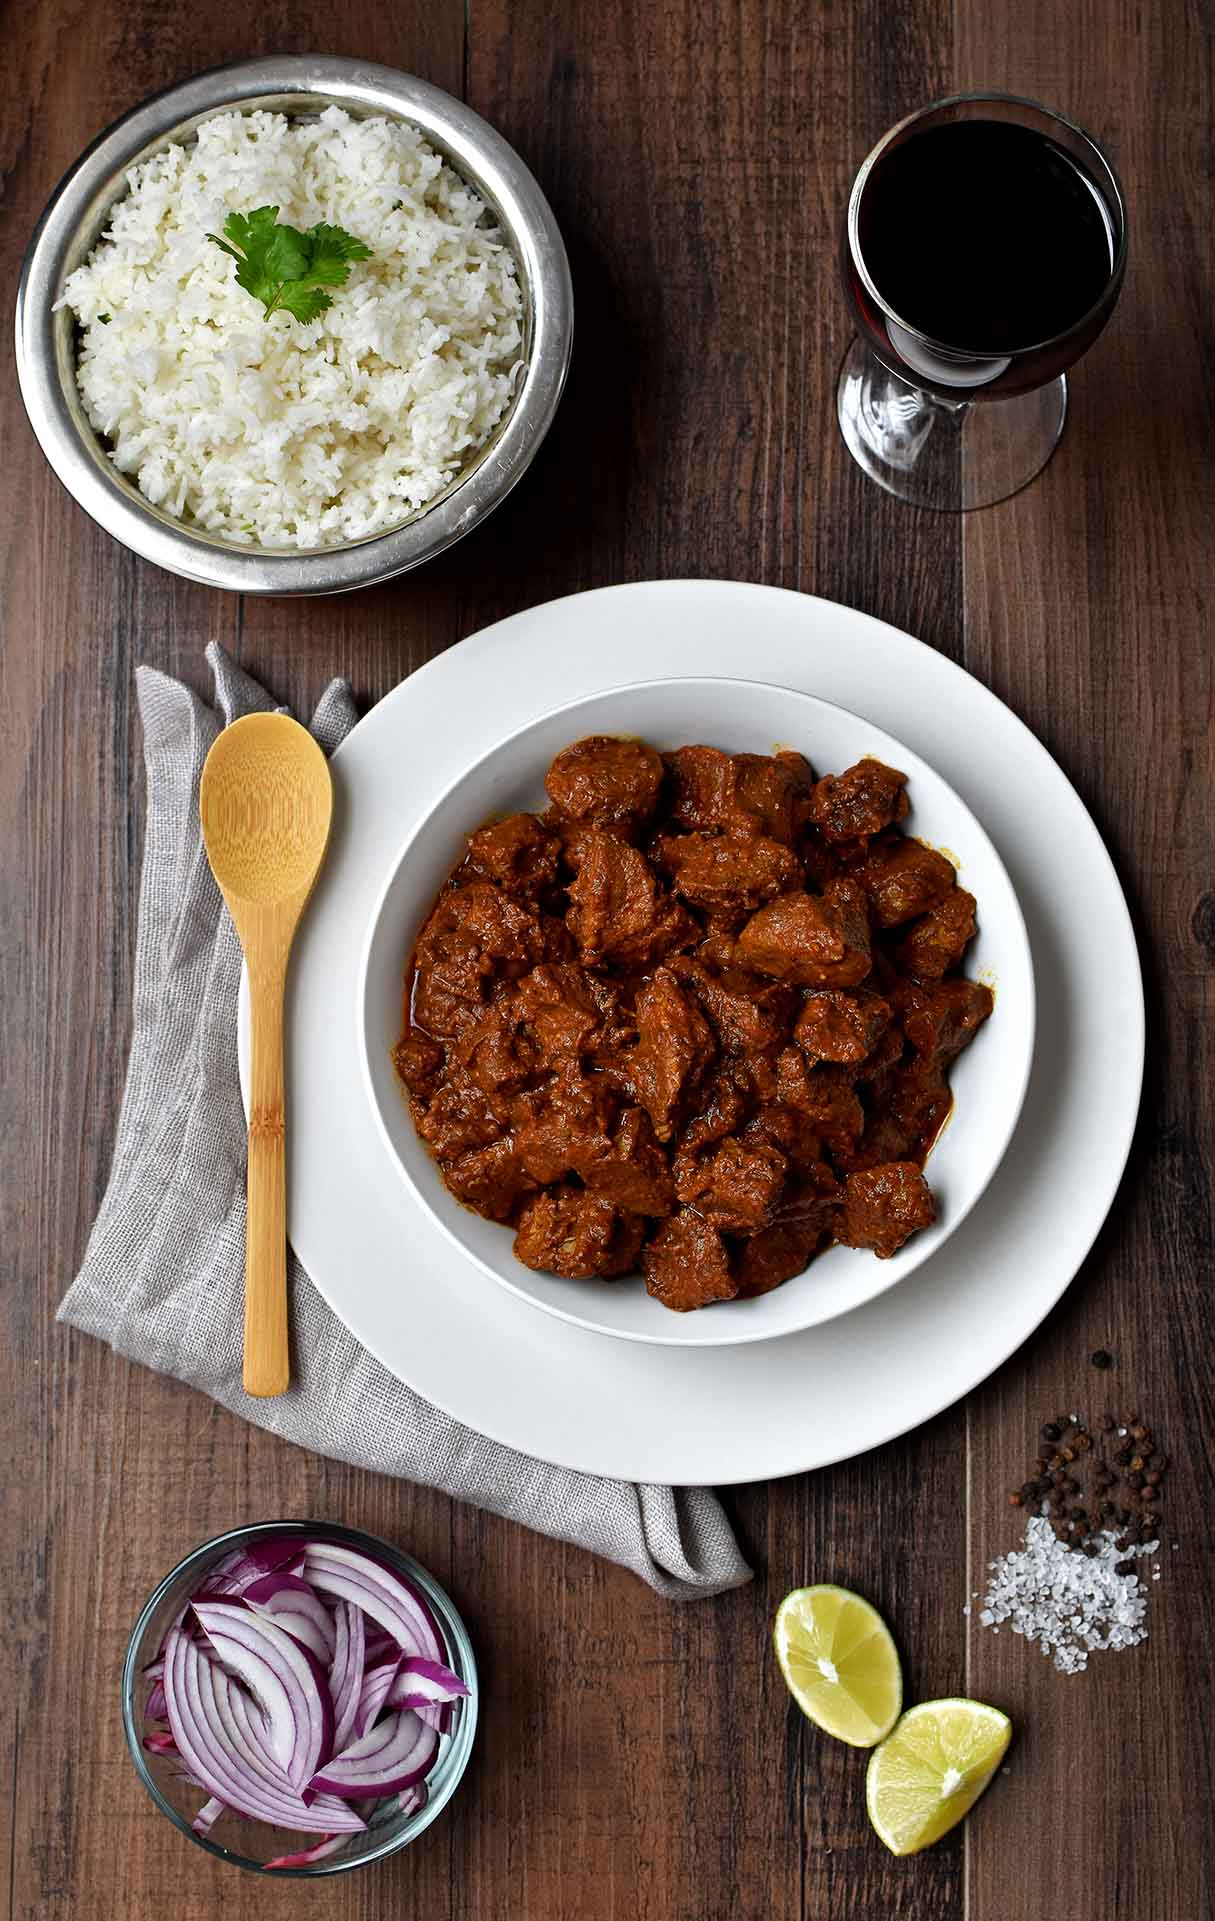 Pork Vindaloo- Pepper Delight #pepperdelightblog #recipe #vindaloo #thanksgiving #newyear #pork #kerala #goanporkvindaloo #slowcooked #christmas #holidayrecipes #goa #goanrecipes #festivals